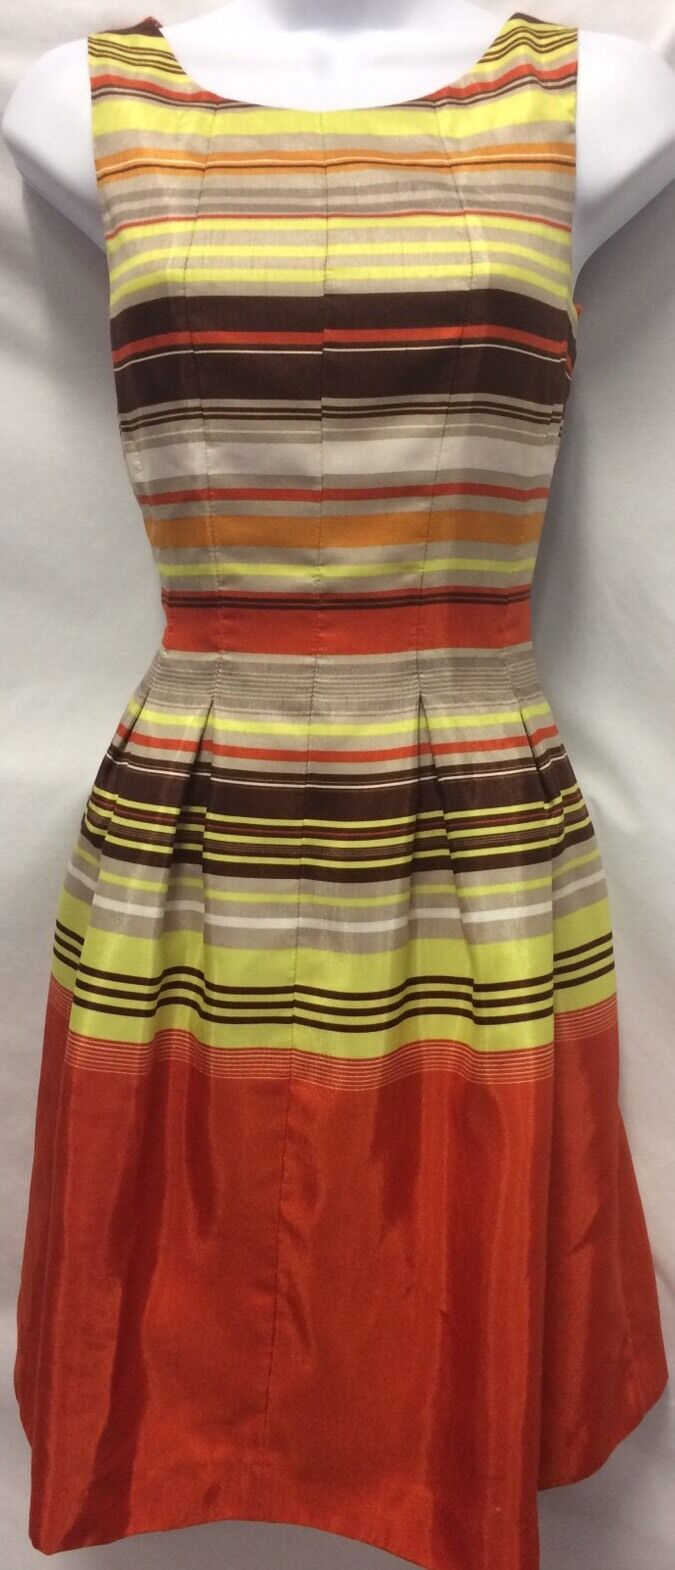 JUST TAYLOR Dress Anthropologie Women's Striped  Fit Flare Sleeveless Pleated 2